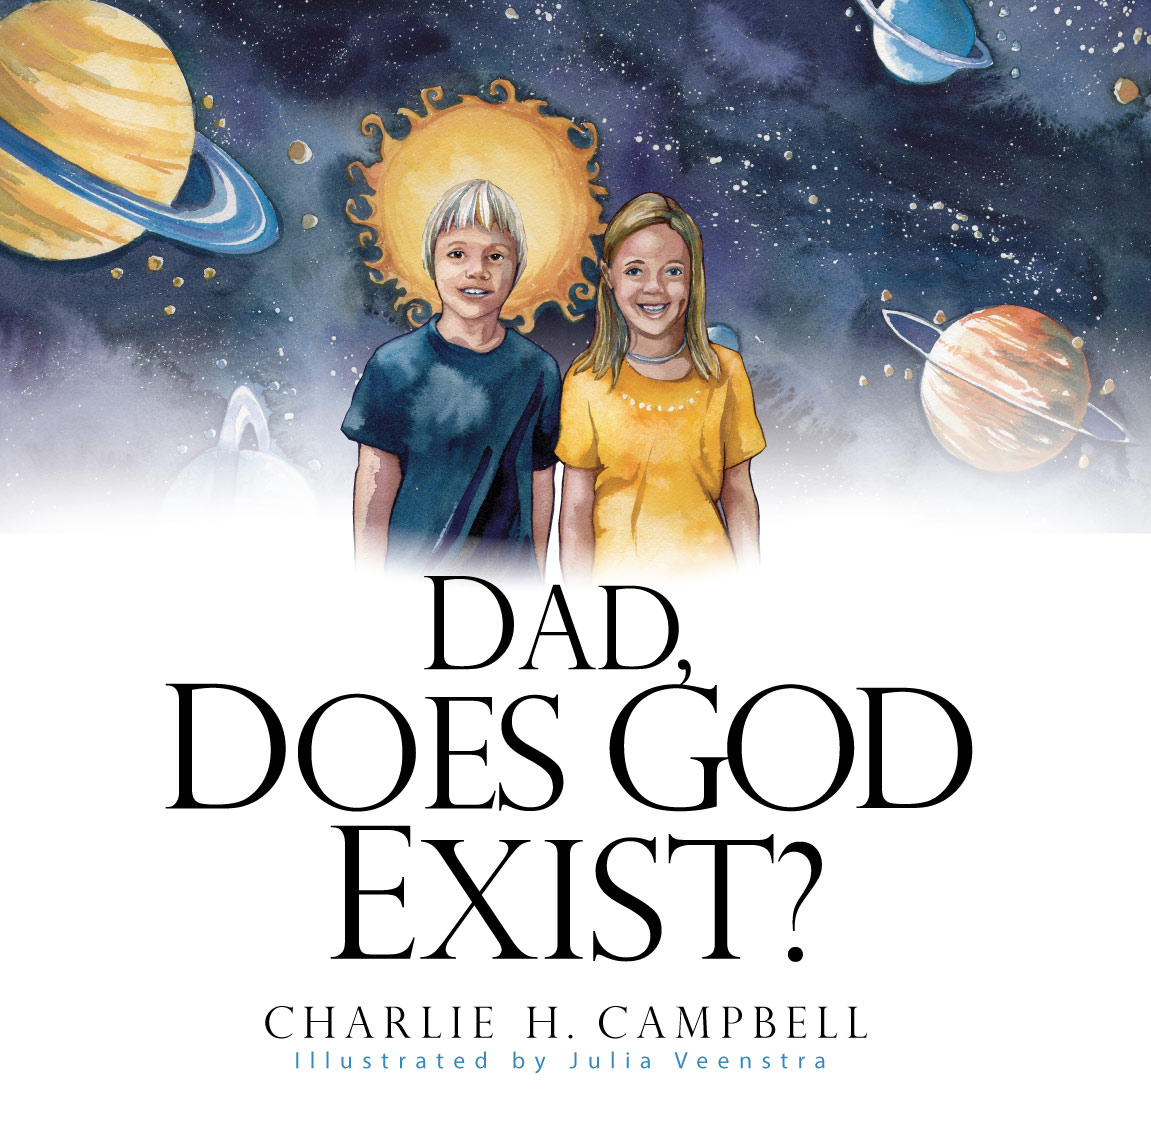 Dad, Does God Exist?